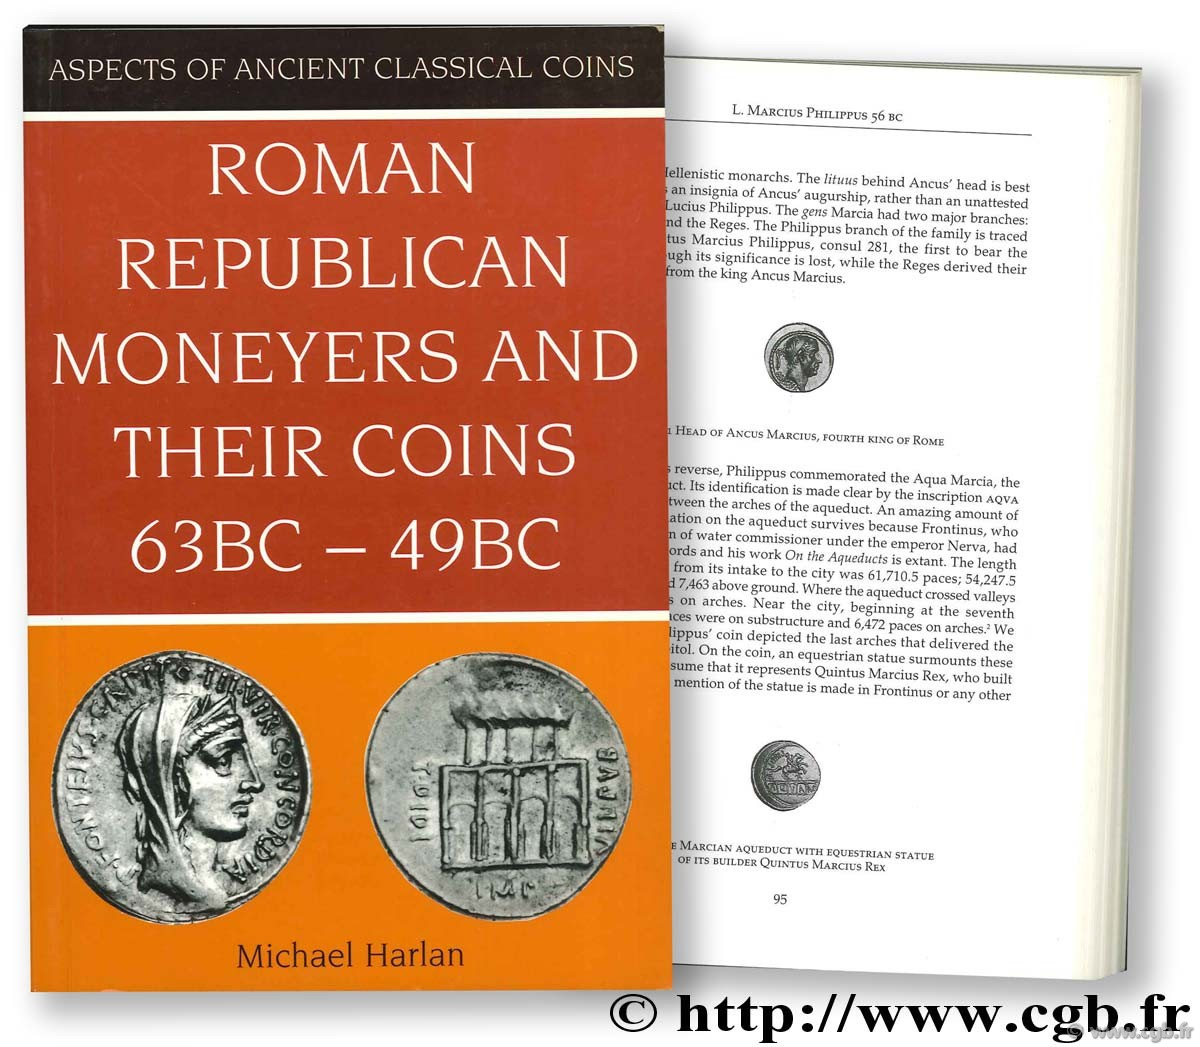 Roman Republican Moneyers and their Coins (63 BC - 49 BC) HARLAN M.